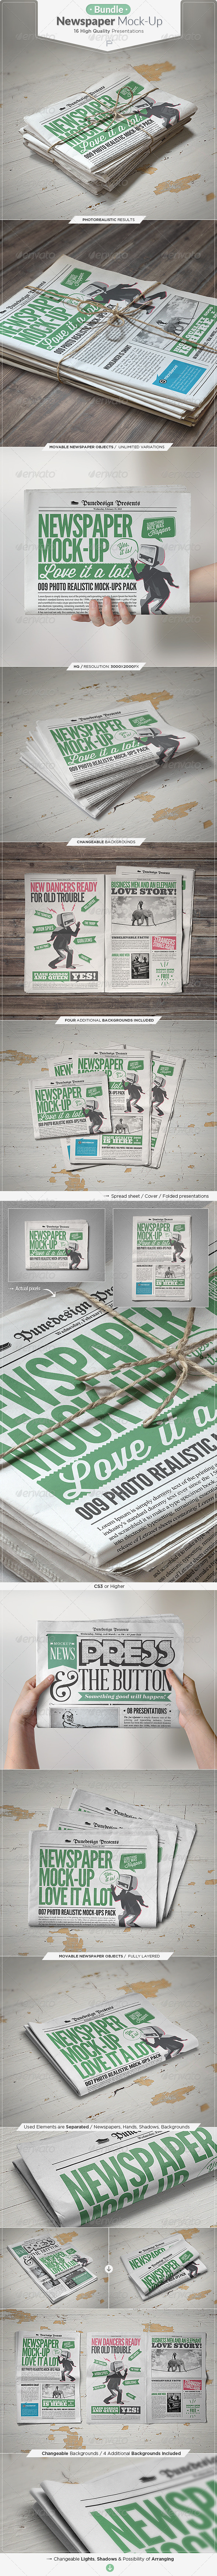 GraphicRiver Newspaper Mock-up Bundle 7493506